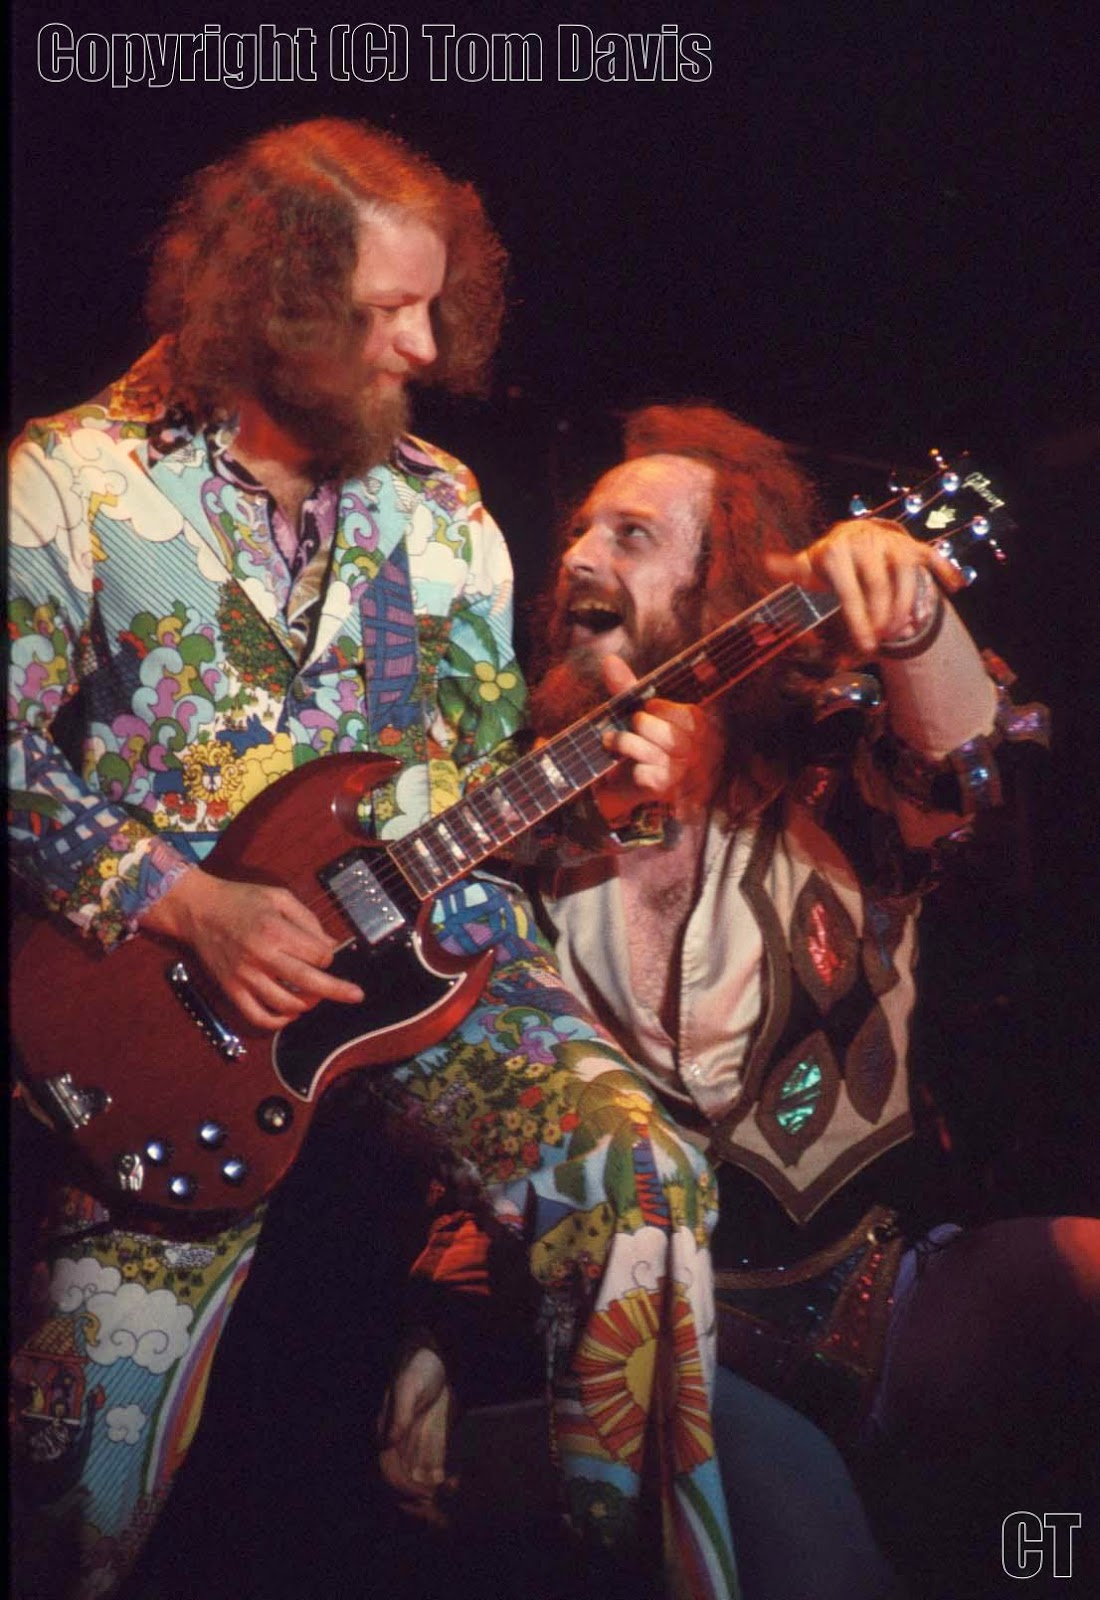 Jethro Tull - A Passion Play / Living In The Past Part 3